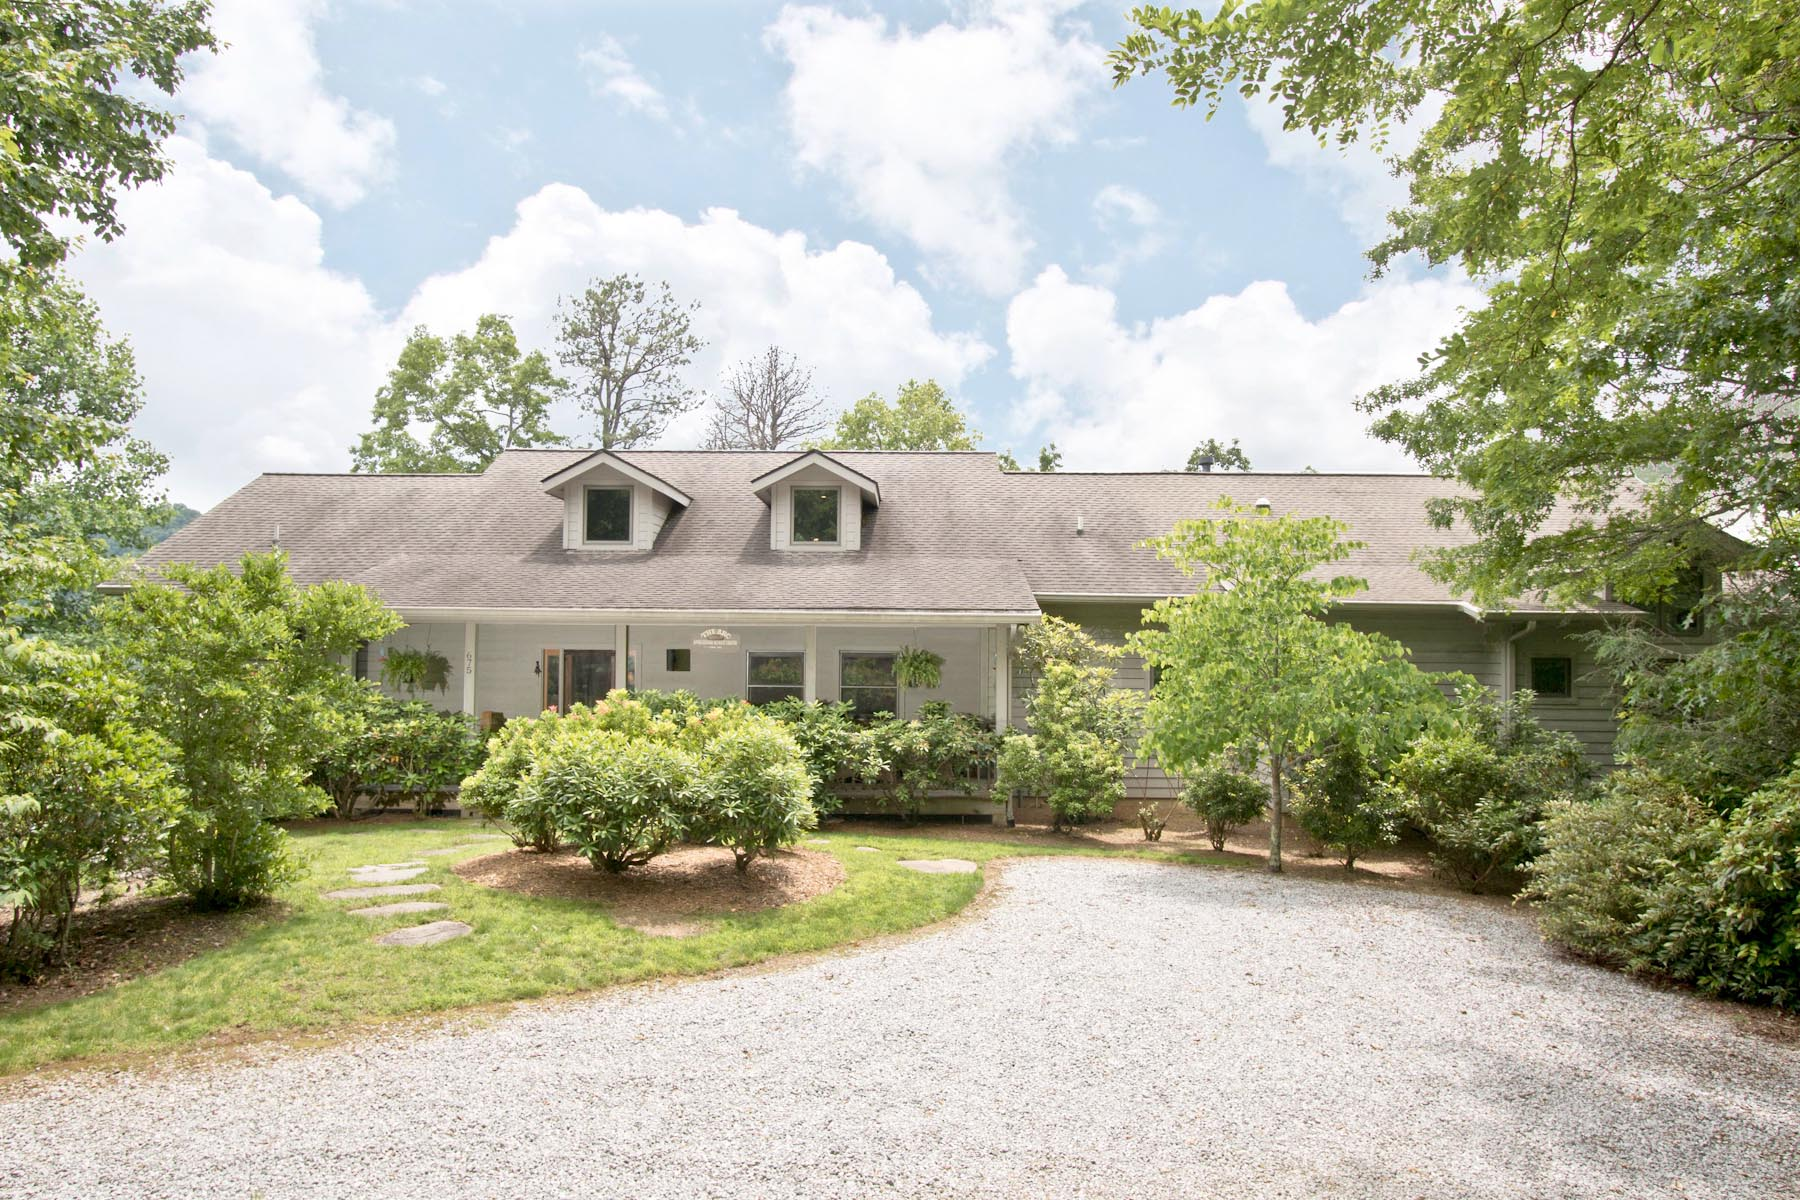 Single Family Home for Active at Butler 675 Falls Road Scaly Mountain, North Carolina 28775 United States